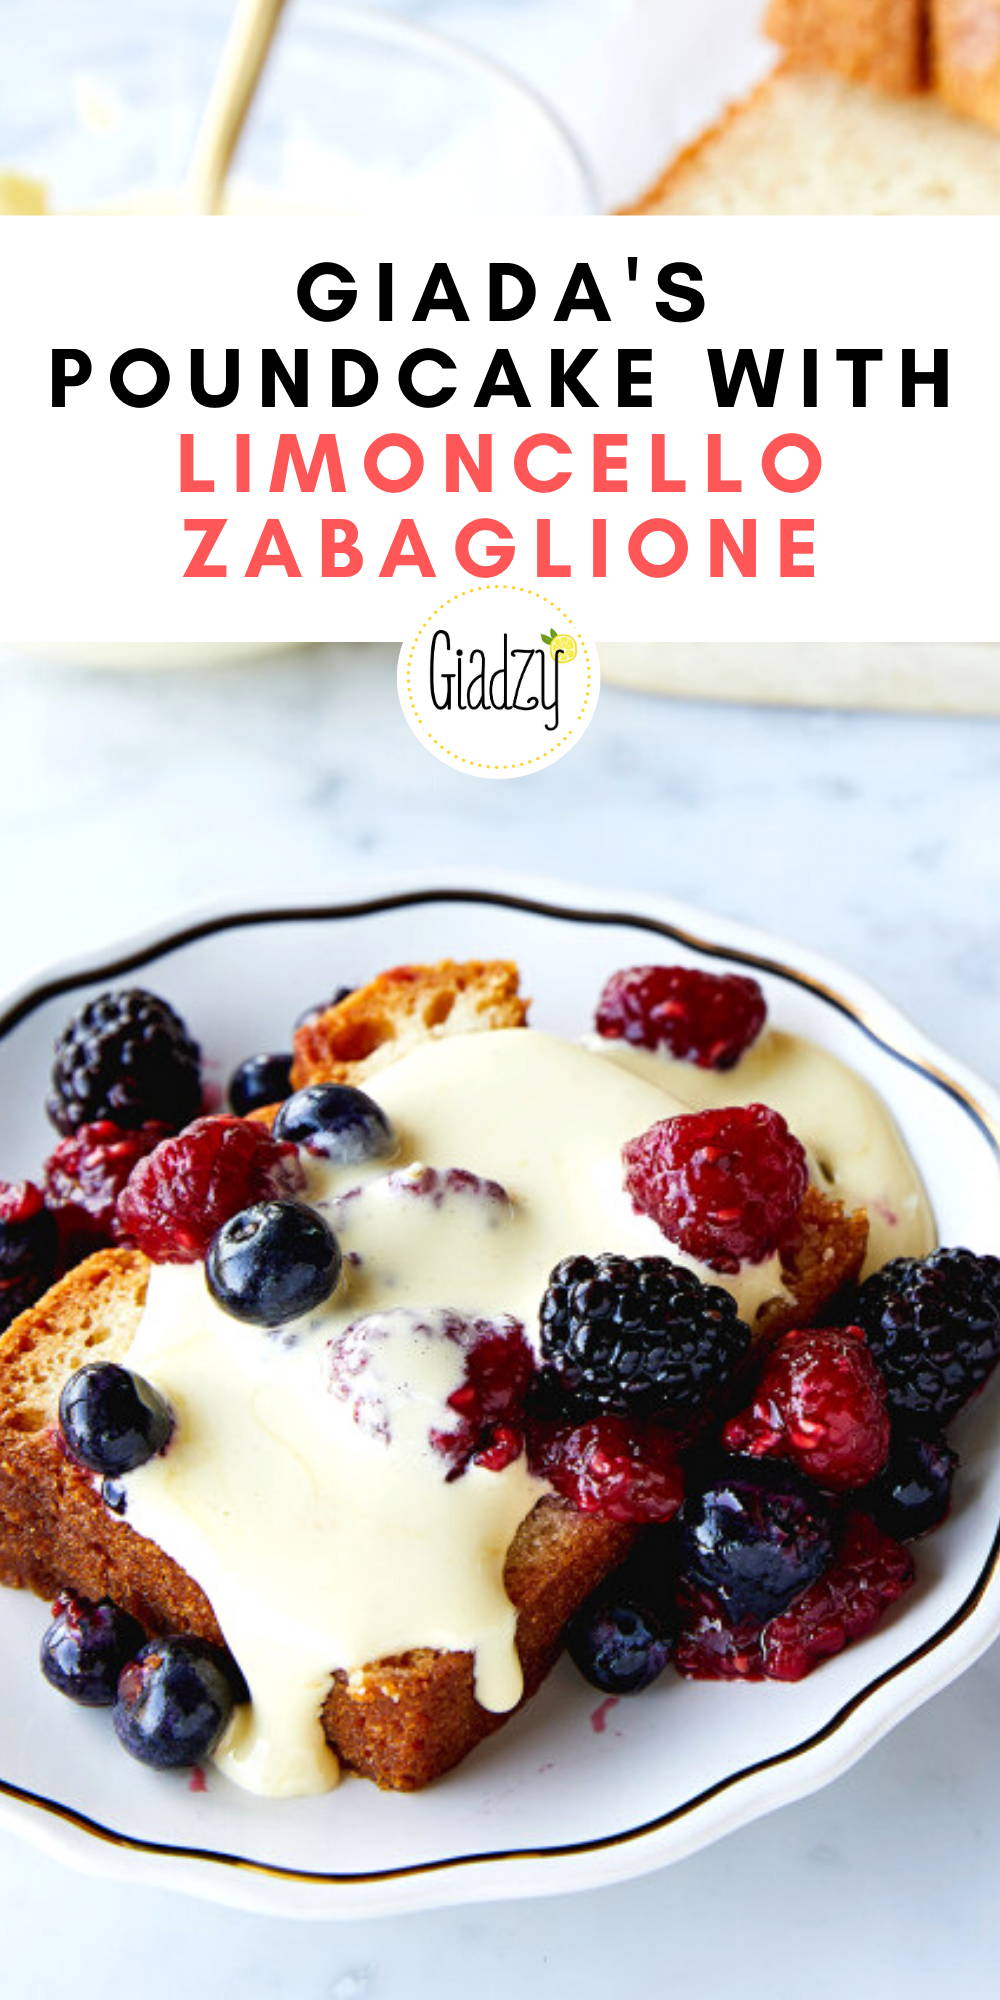 Photo of Giada's Poundcake With Limoncello Zabaglione